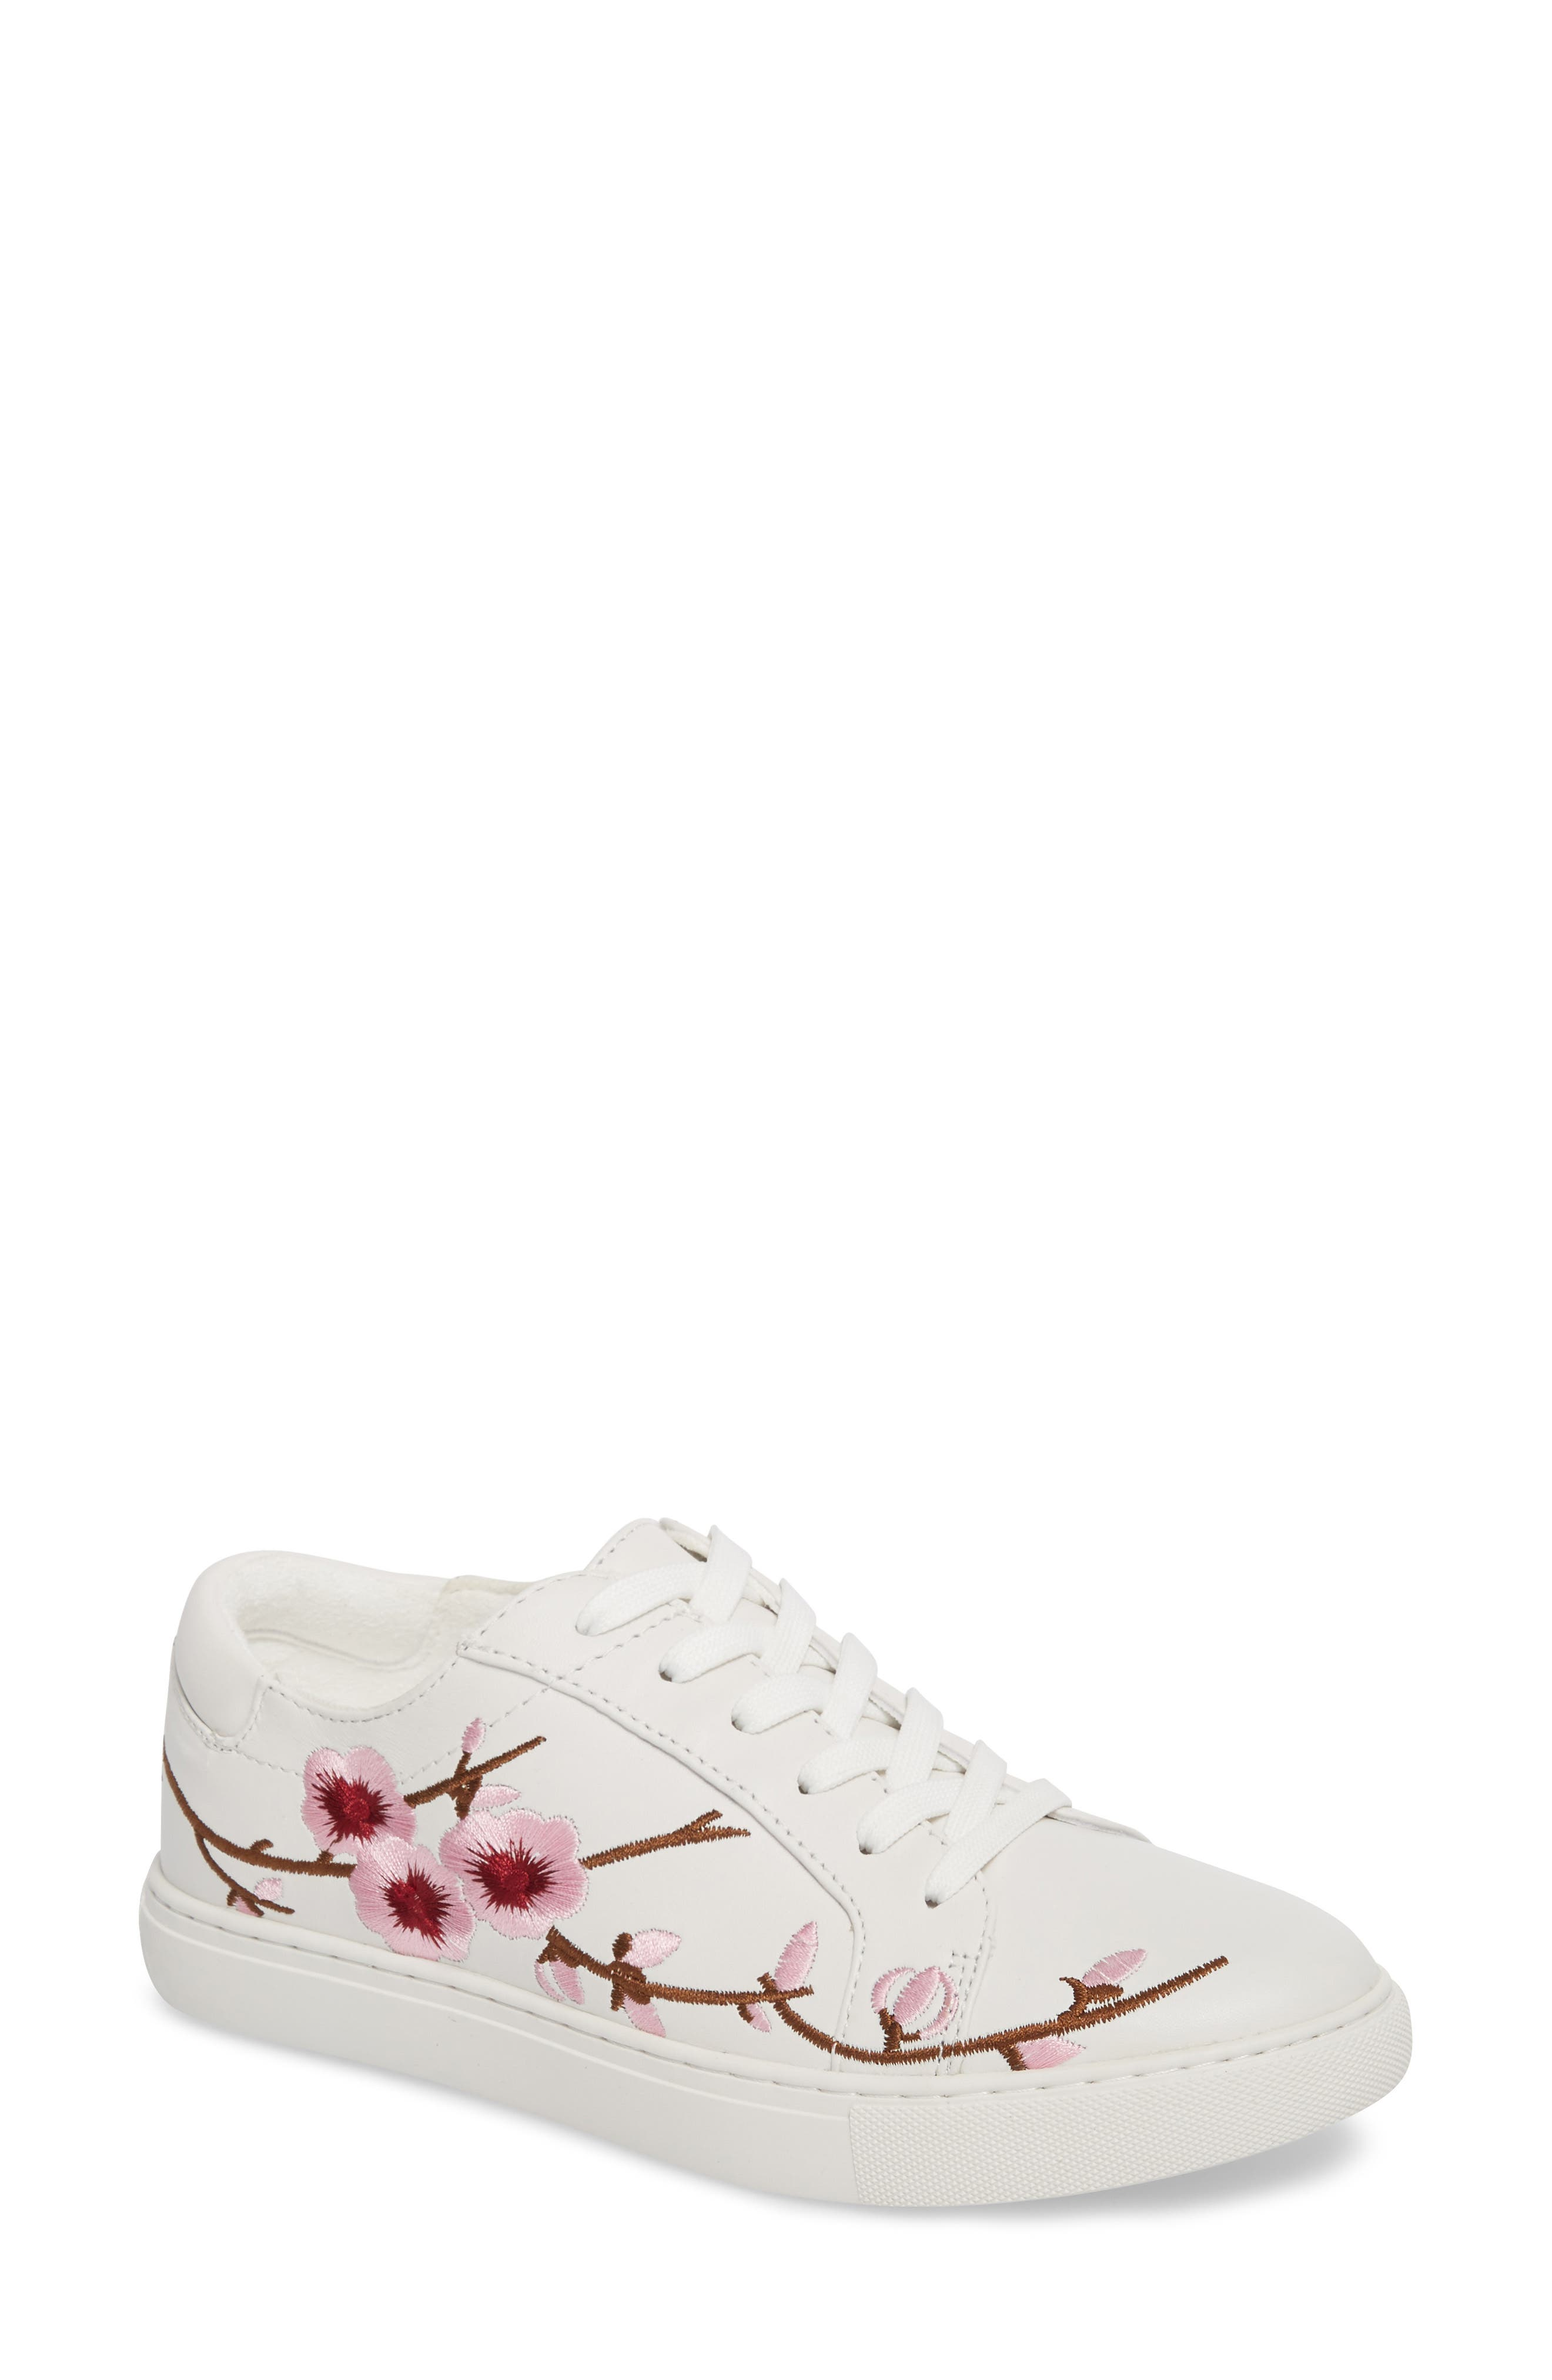 Kam Blossom Embroidered Sneaker,                             Main thumbnail 1, color,                             White Leather